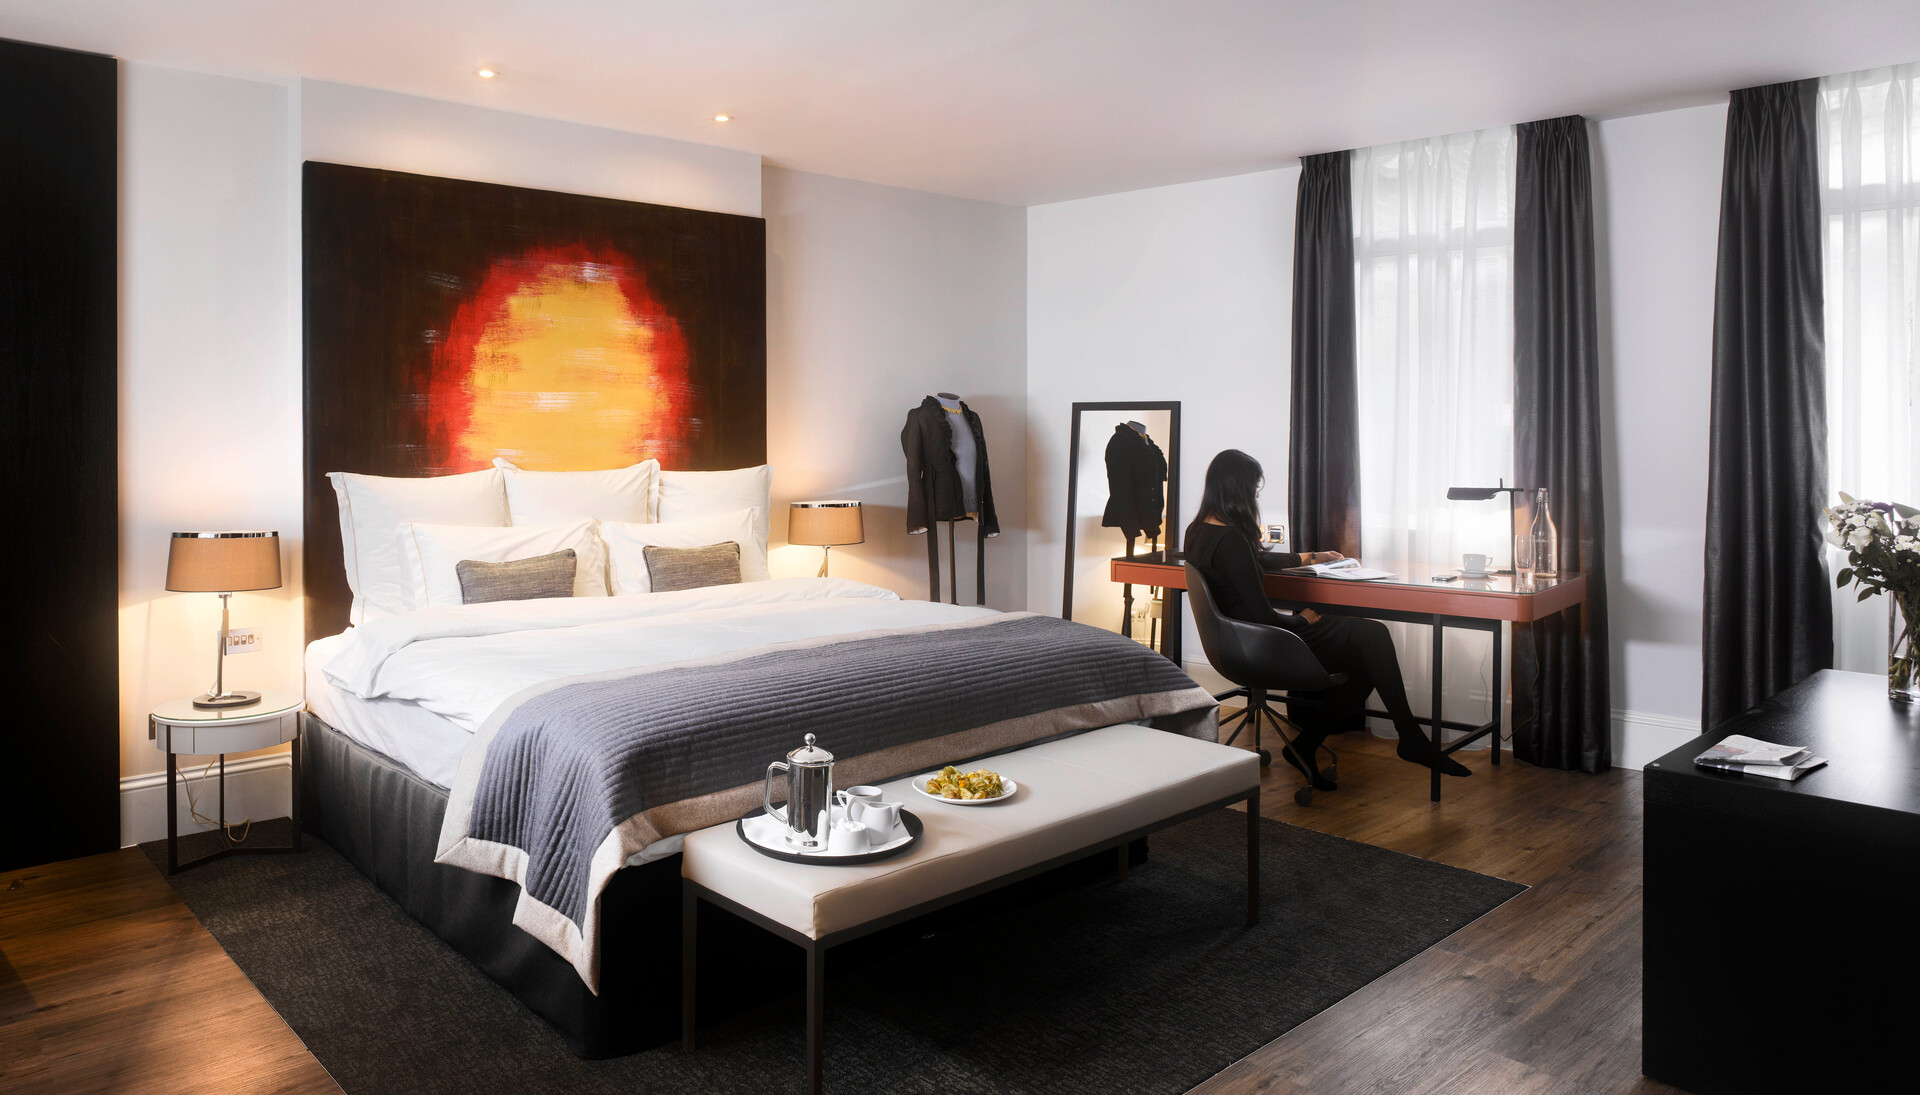 Townsend Leather's Abstract Art Lunar was used on the headboard of the Executive King Guest Room in Threadneedles Hotel, London.